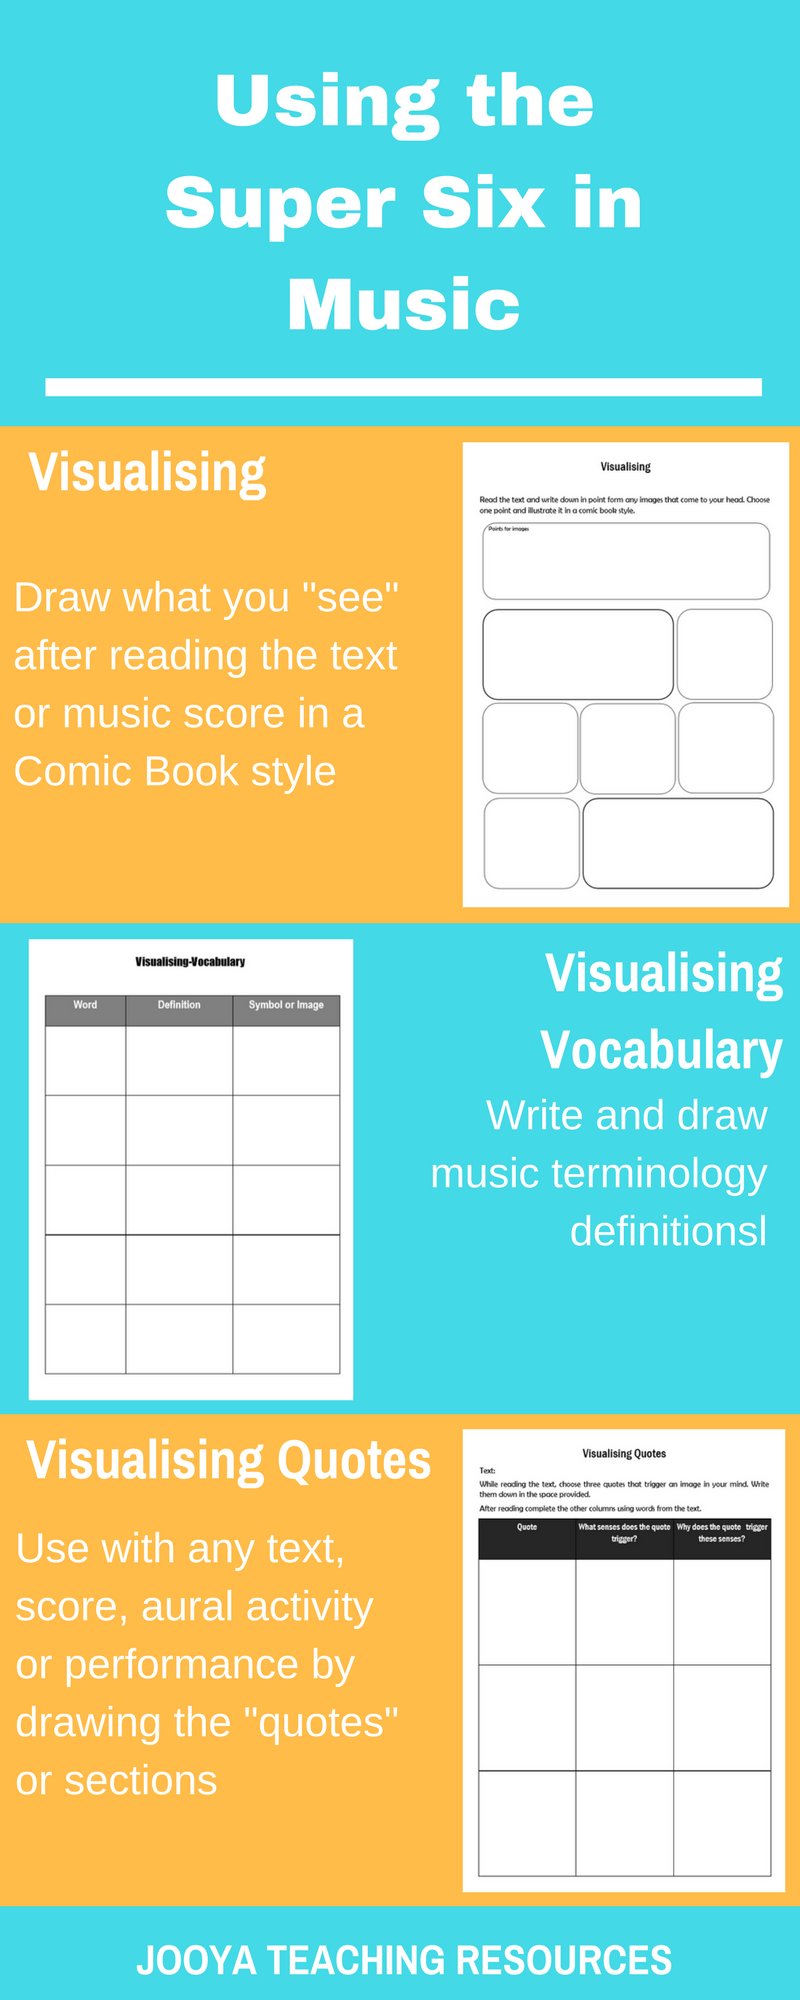 Super Six blog post on Visualising by Jooya Teaching Resources. Discover 10 ways to use Visualising in your music class to improve literacy and musical skills with your students.